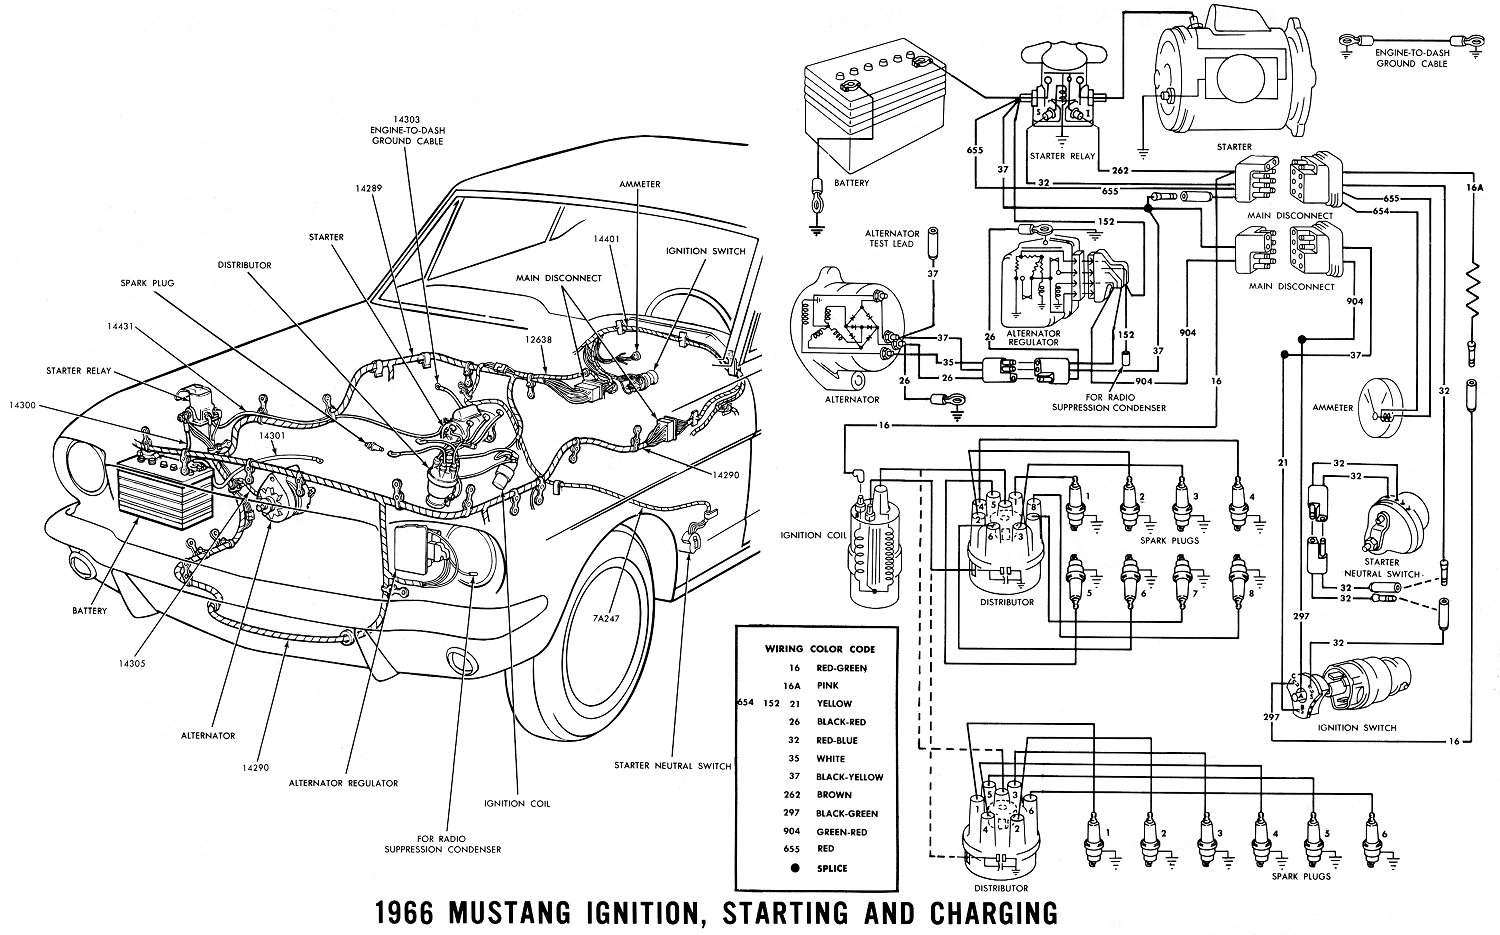 66ignit 1966 mustang wiring diagrams average joe restoration 1969 ford mustang ignition wiring diagram at n-0.co